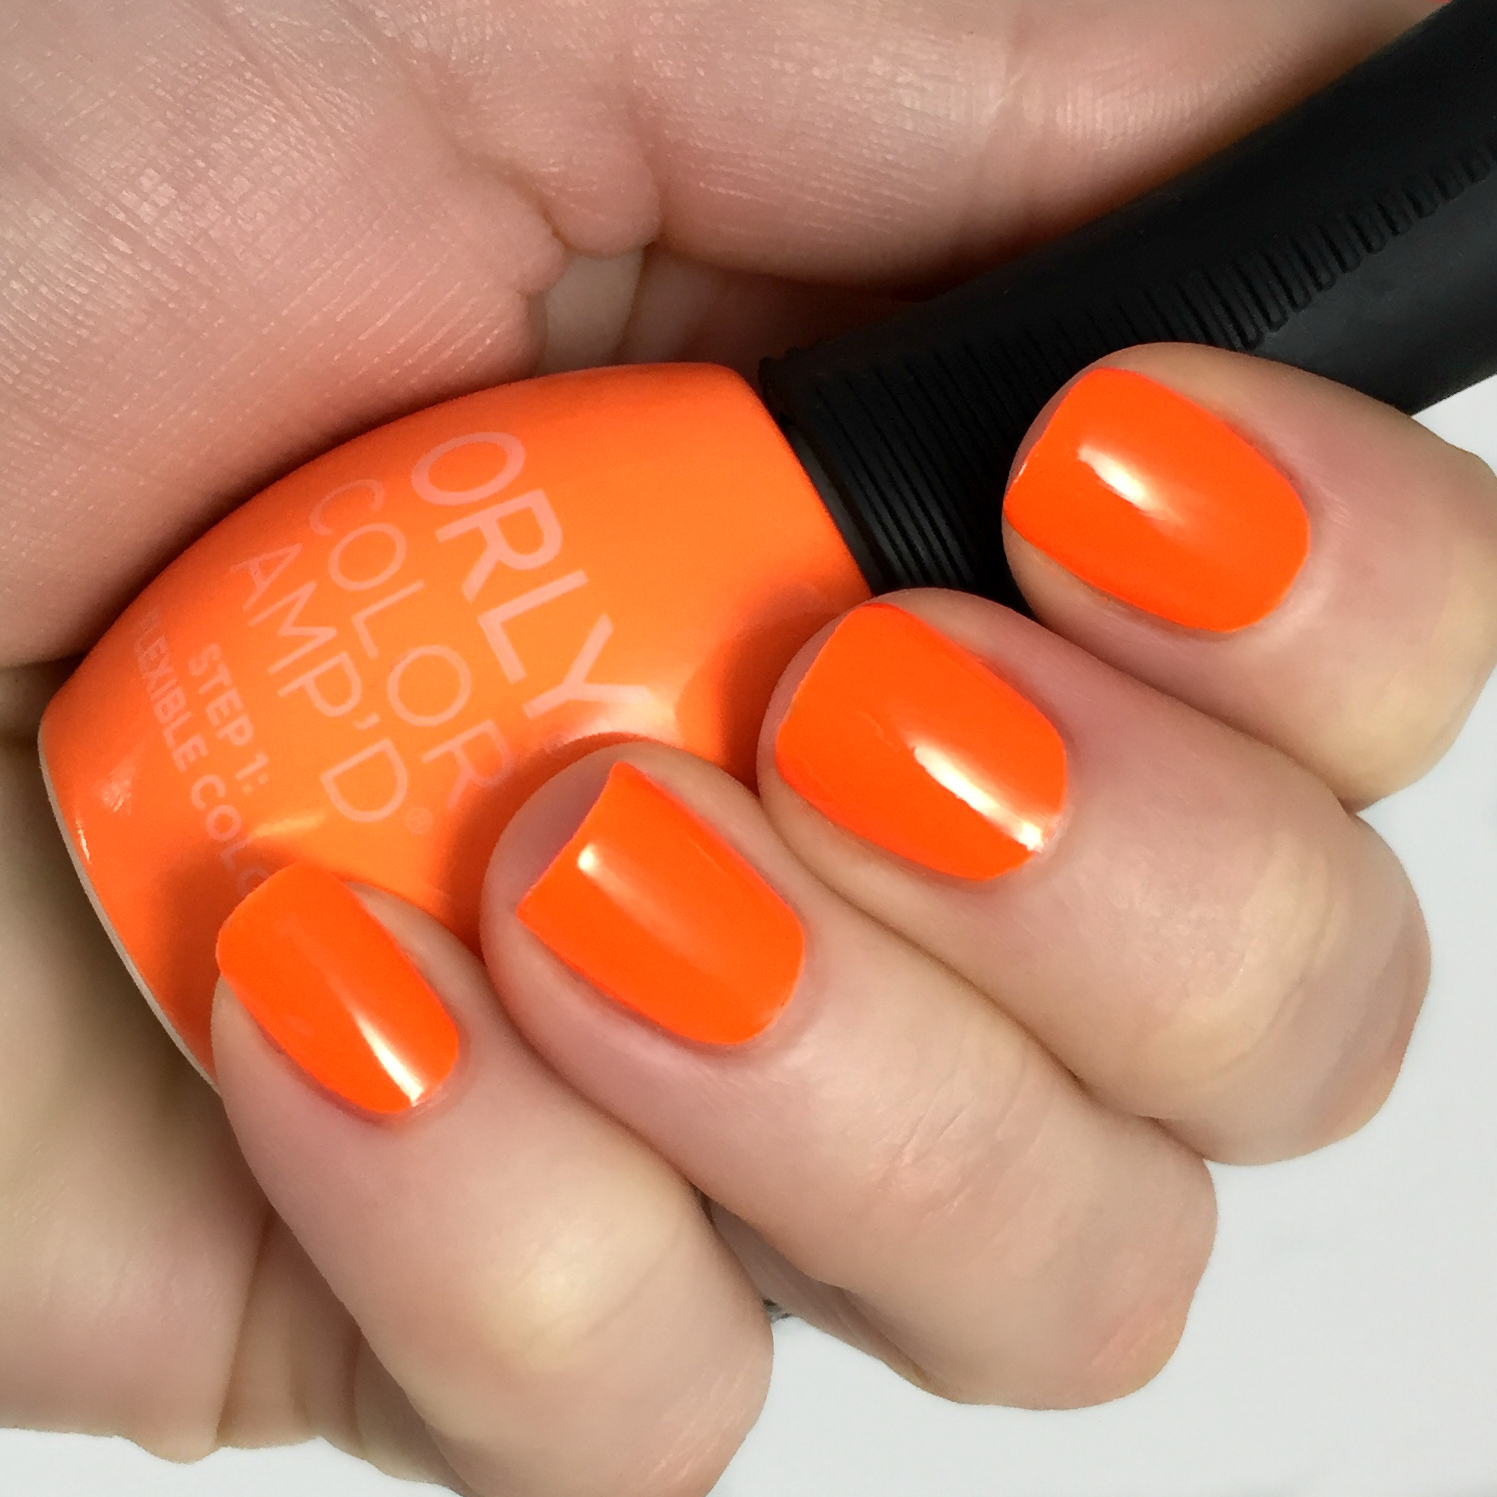 Shades Of Summer Orly Color Amp D Nail Polish The Feminine Files